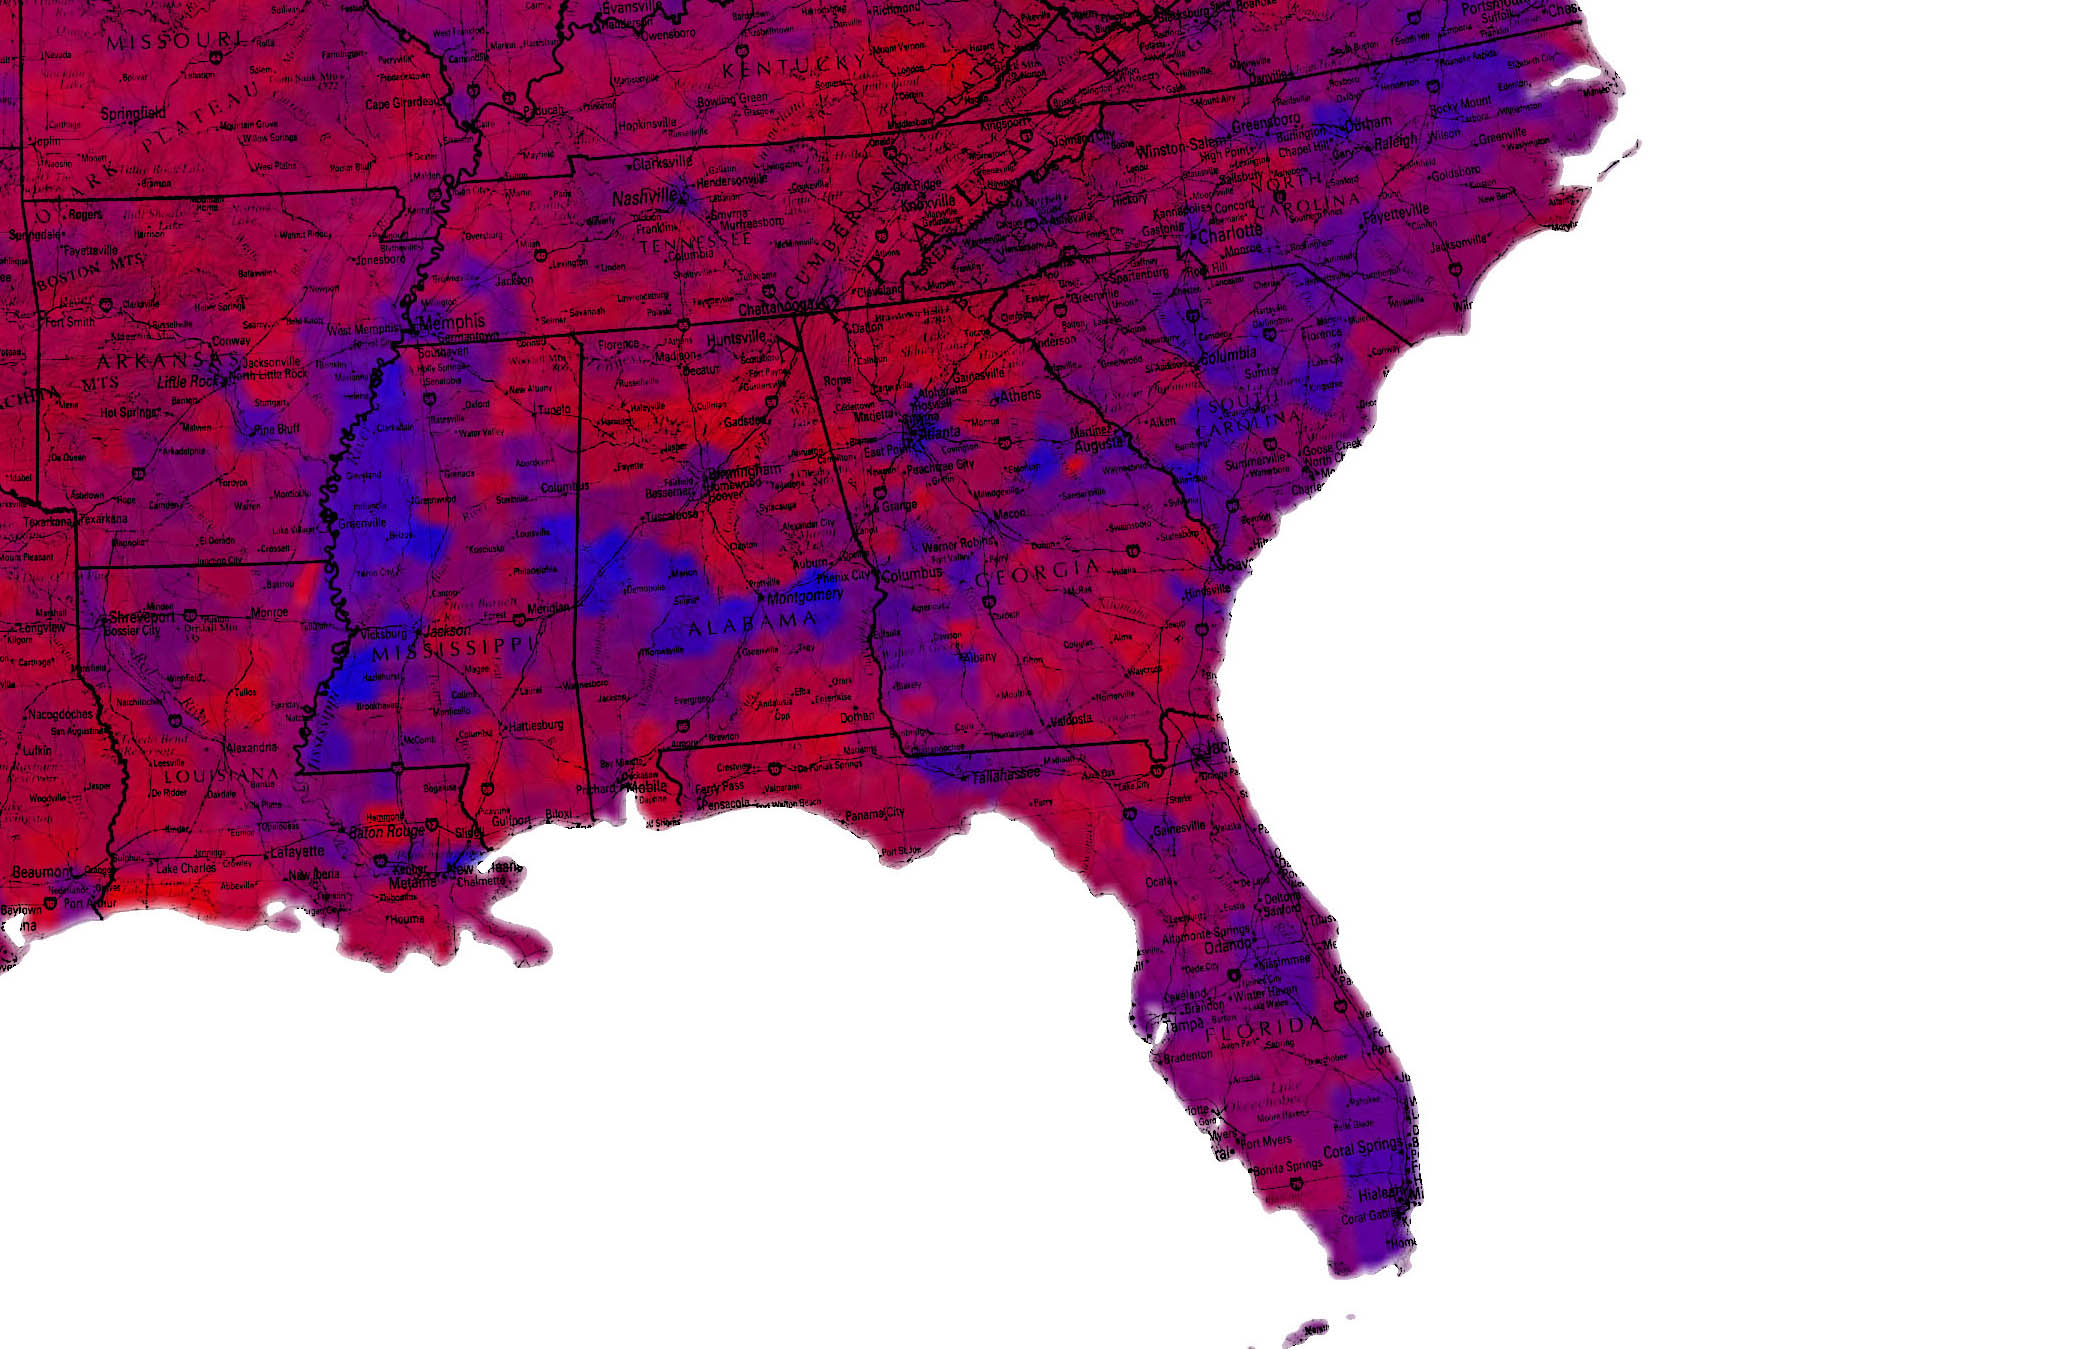 Pres Election Result Map By County LGF Pages - Us election map by county purple